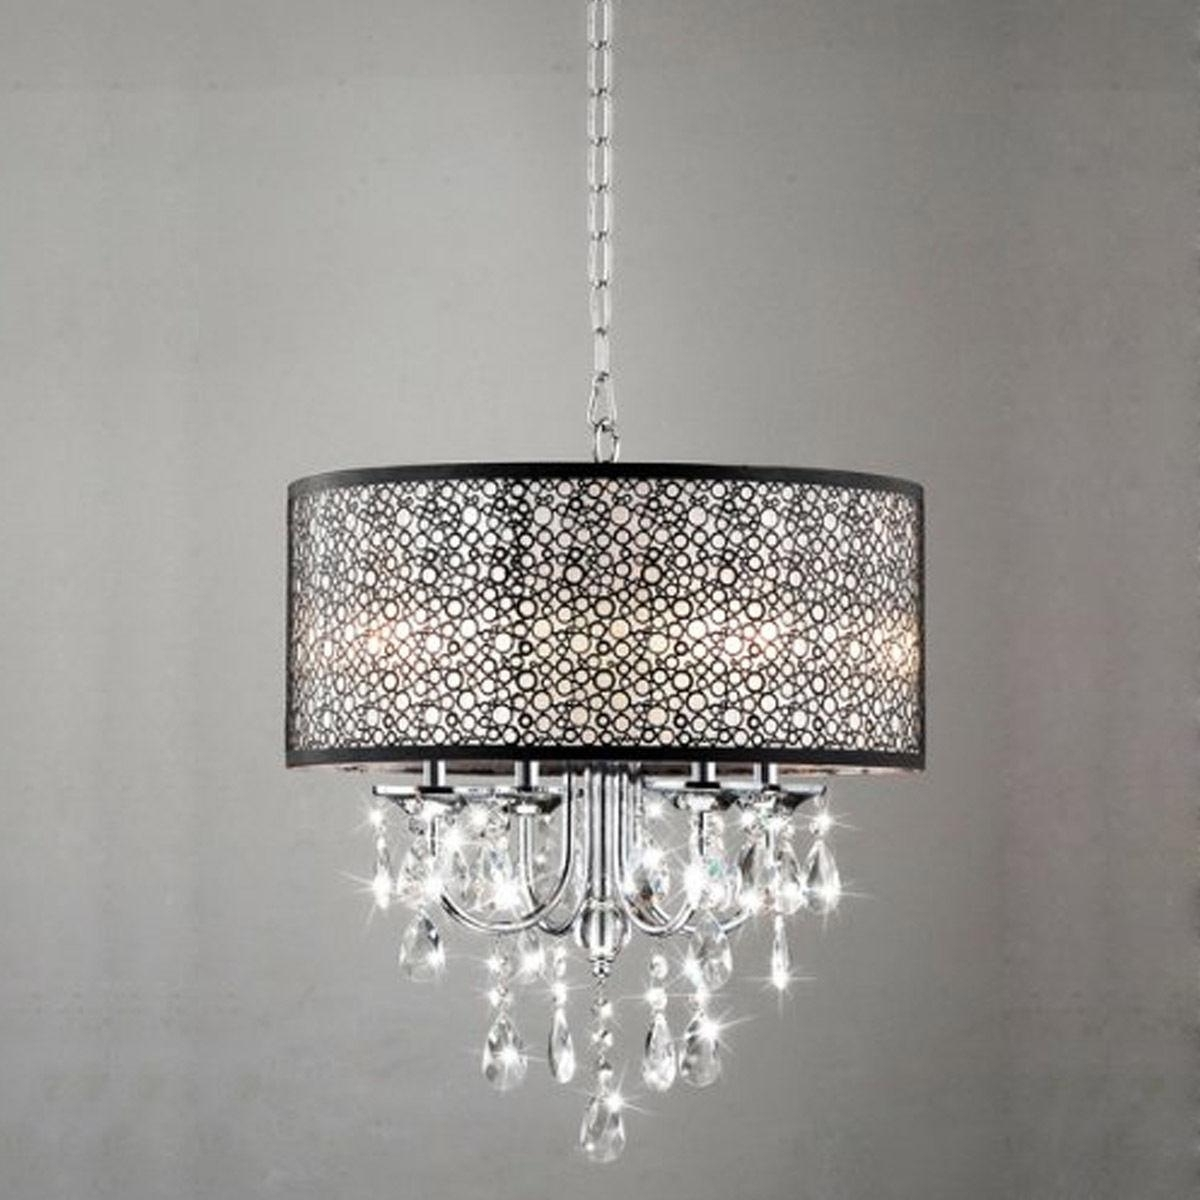 Modern 4 Light Crystal Chandelier Pendant Lamp Ceiling Fixture Home For Most Recently Released 4 Light Crystal Chandeliers (View 9 of 20)